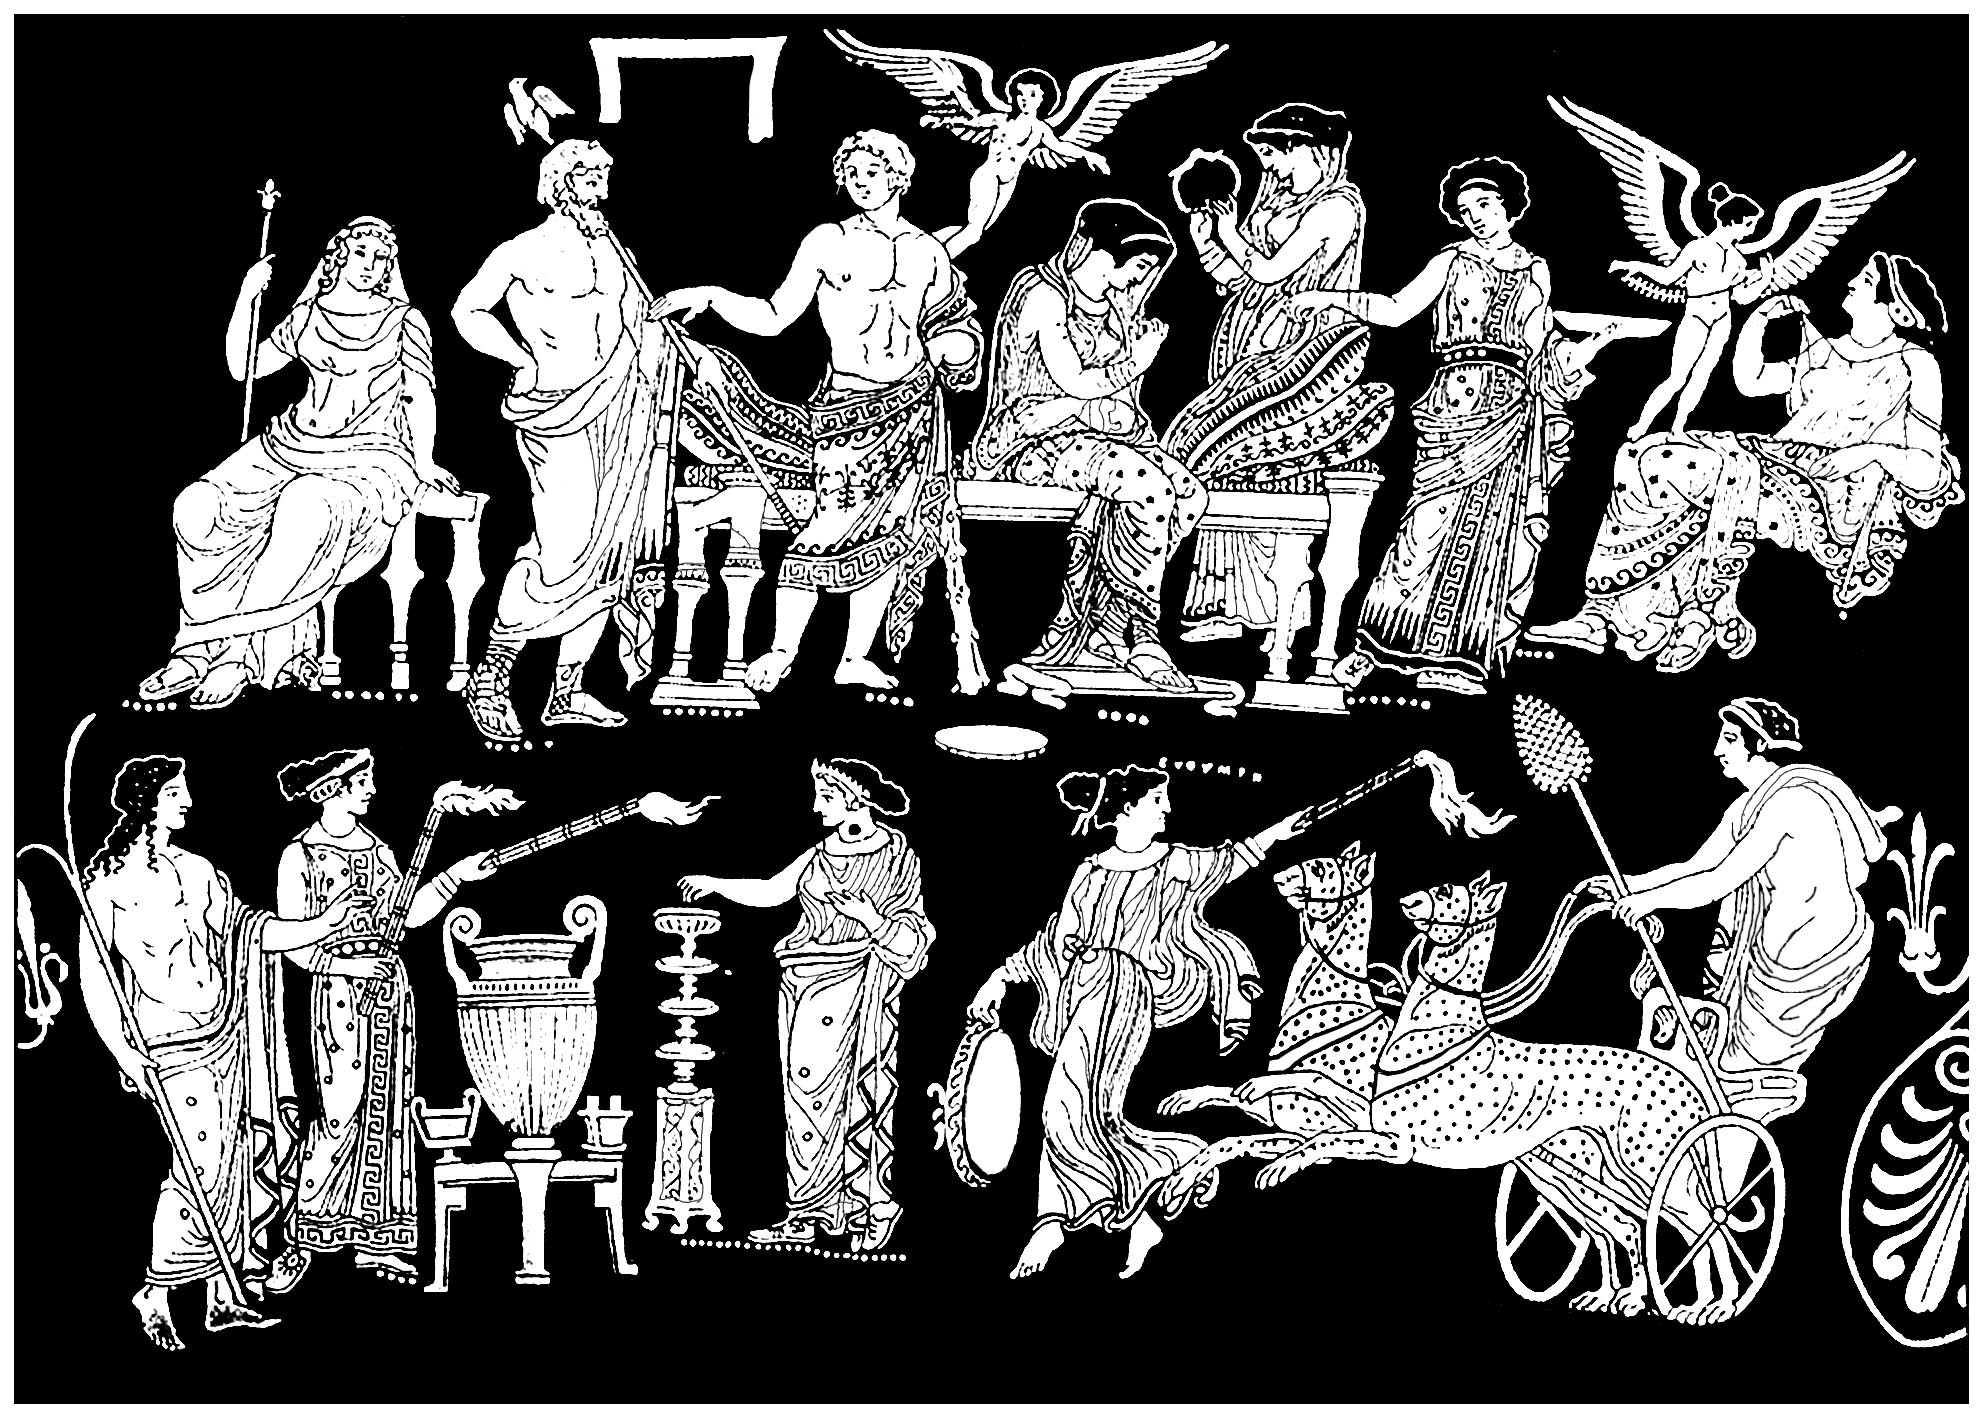 The wedding of hercules and hebe gayley ancient greece adult the wedding of hercules and hebe created from ancient greek vase painting m4hsunfo